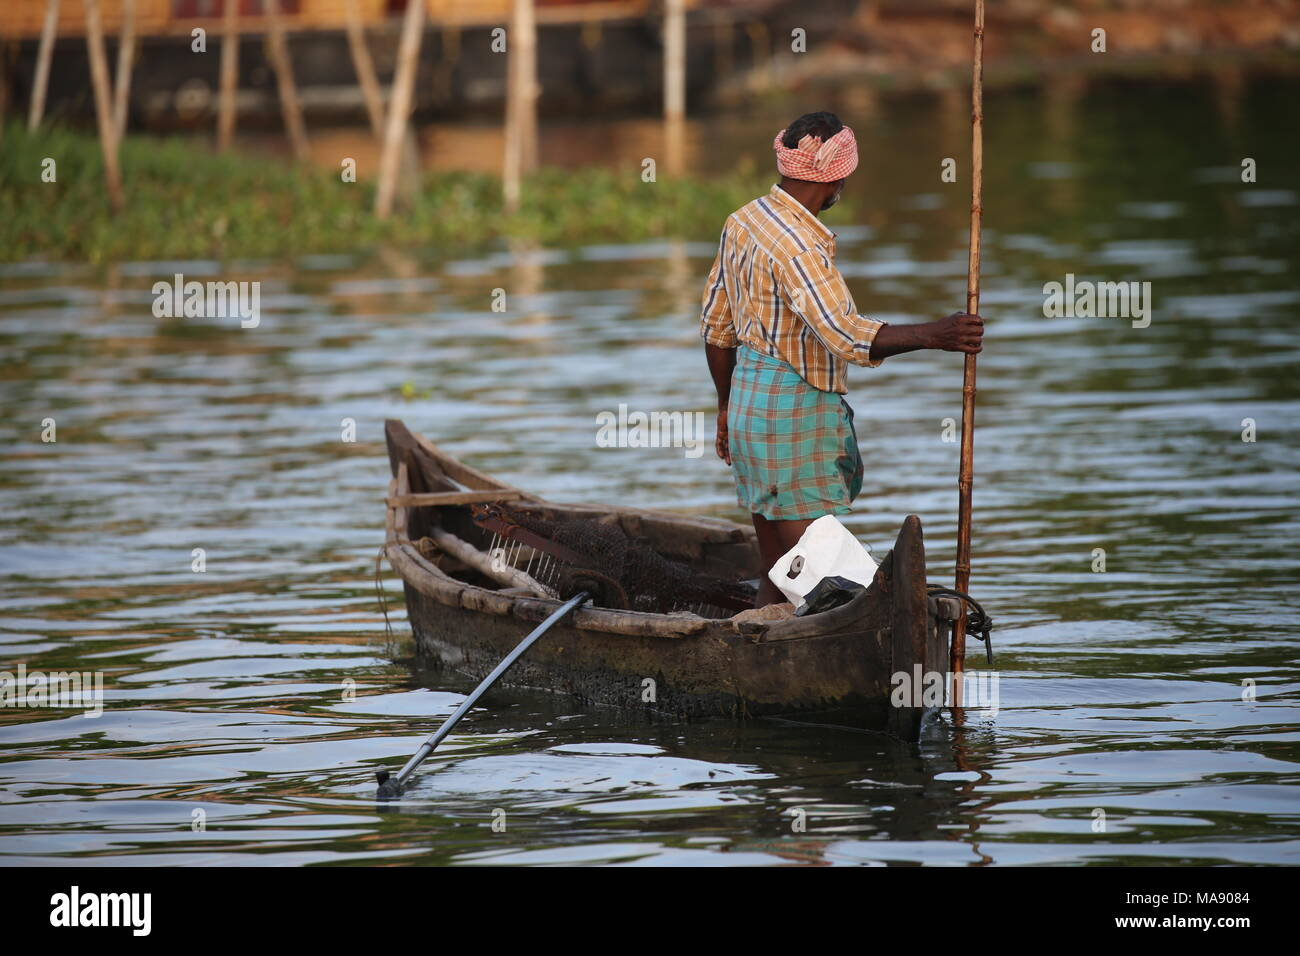 Man with a smal boat was fishing in Kerala Backwaters - Alter Mann in einem Boot beim fischen in kerala - South India - Stock Image